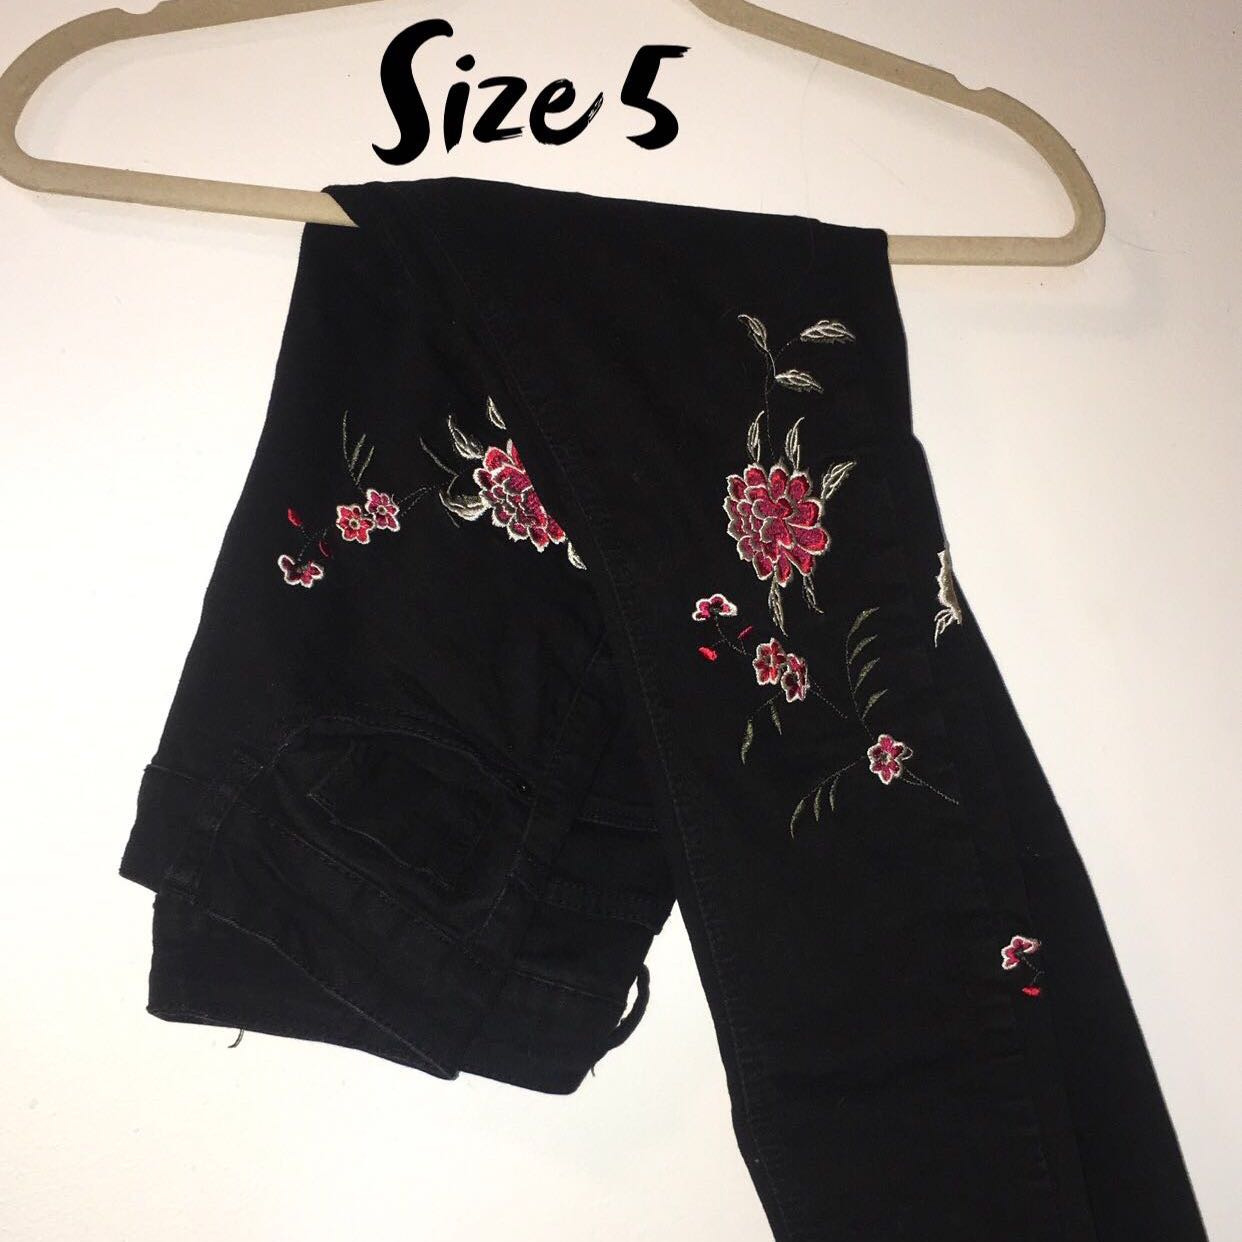 Black & Floral embroidered jeans